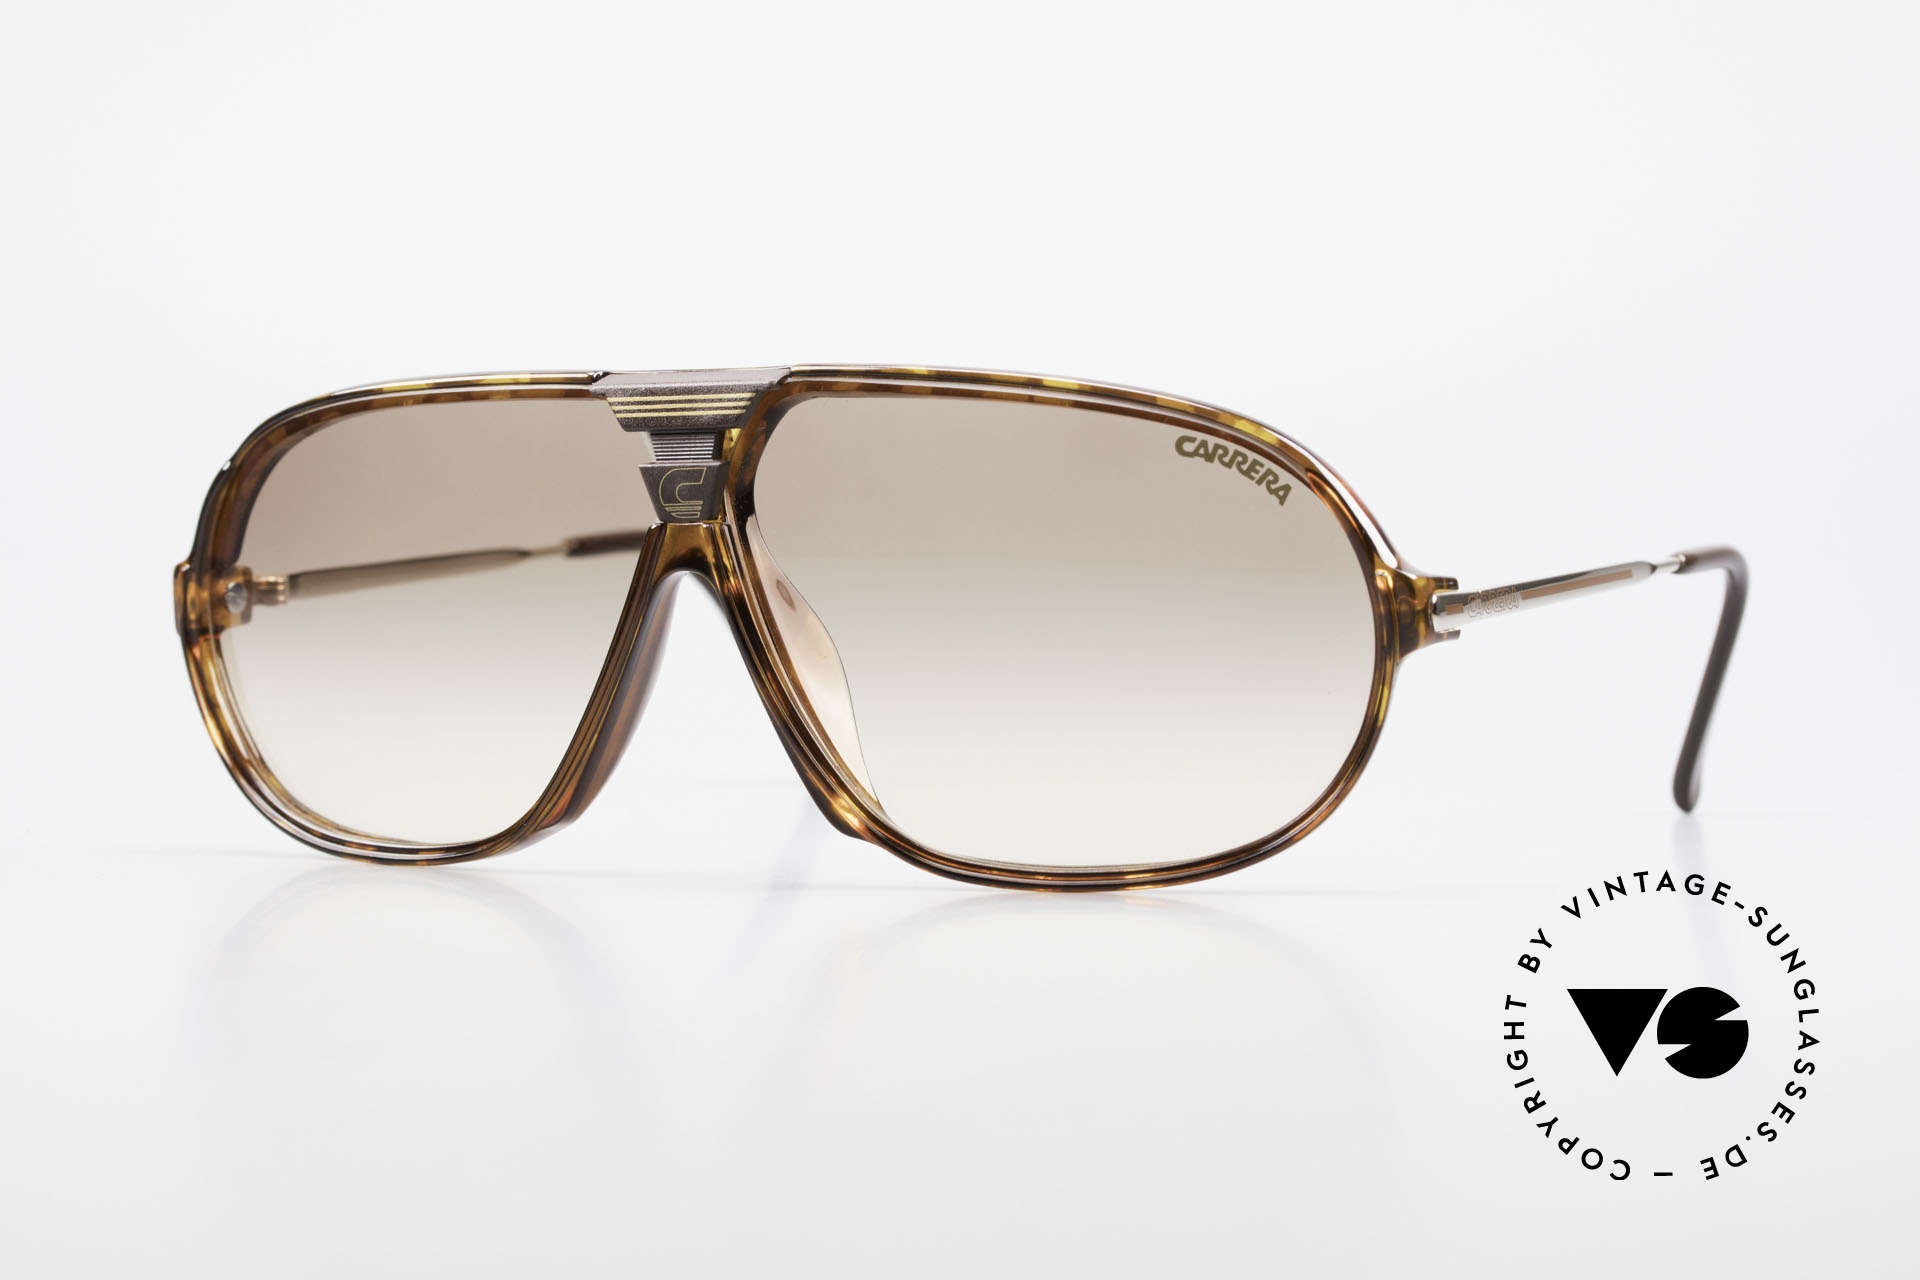 Carrera 5416 80's Shades Additional Lenses, sensational sports shades by Carrera from 1988, Made for Men